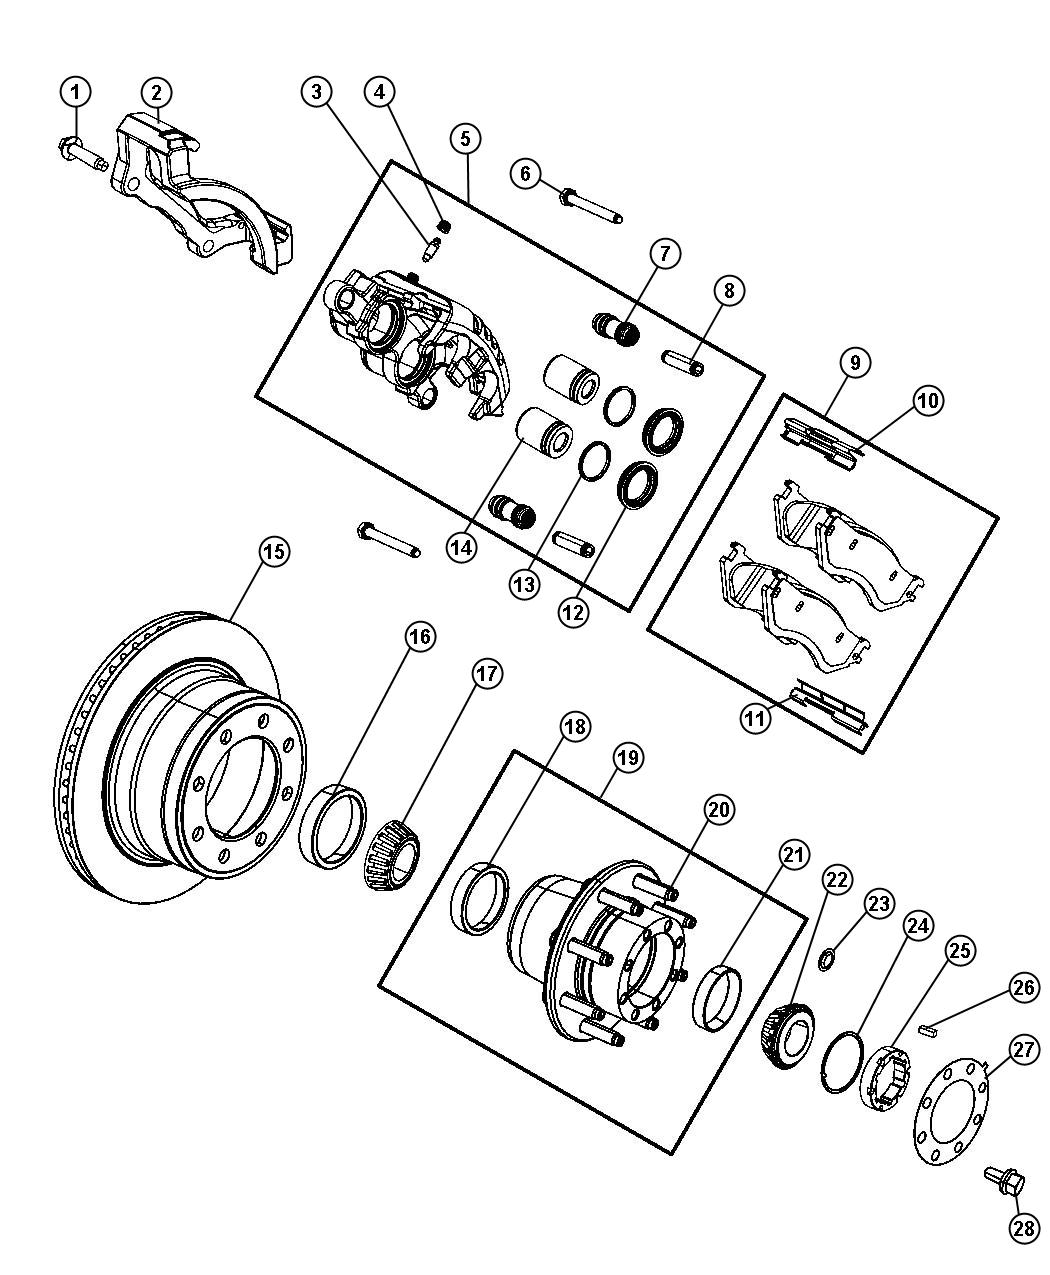 1998 honda accord coupe parts diagram  honda  auto wiring